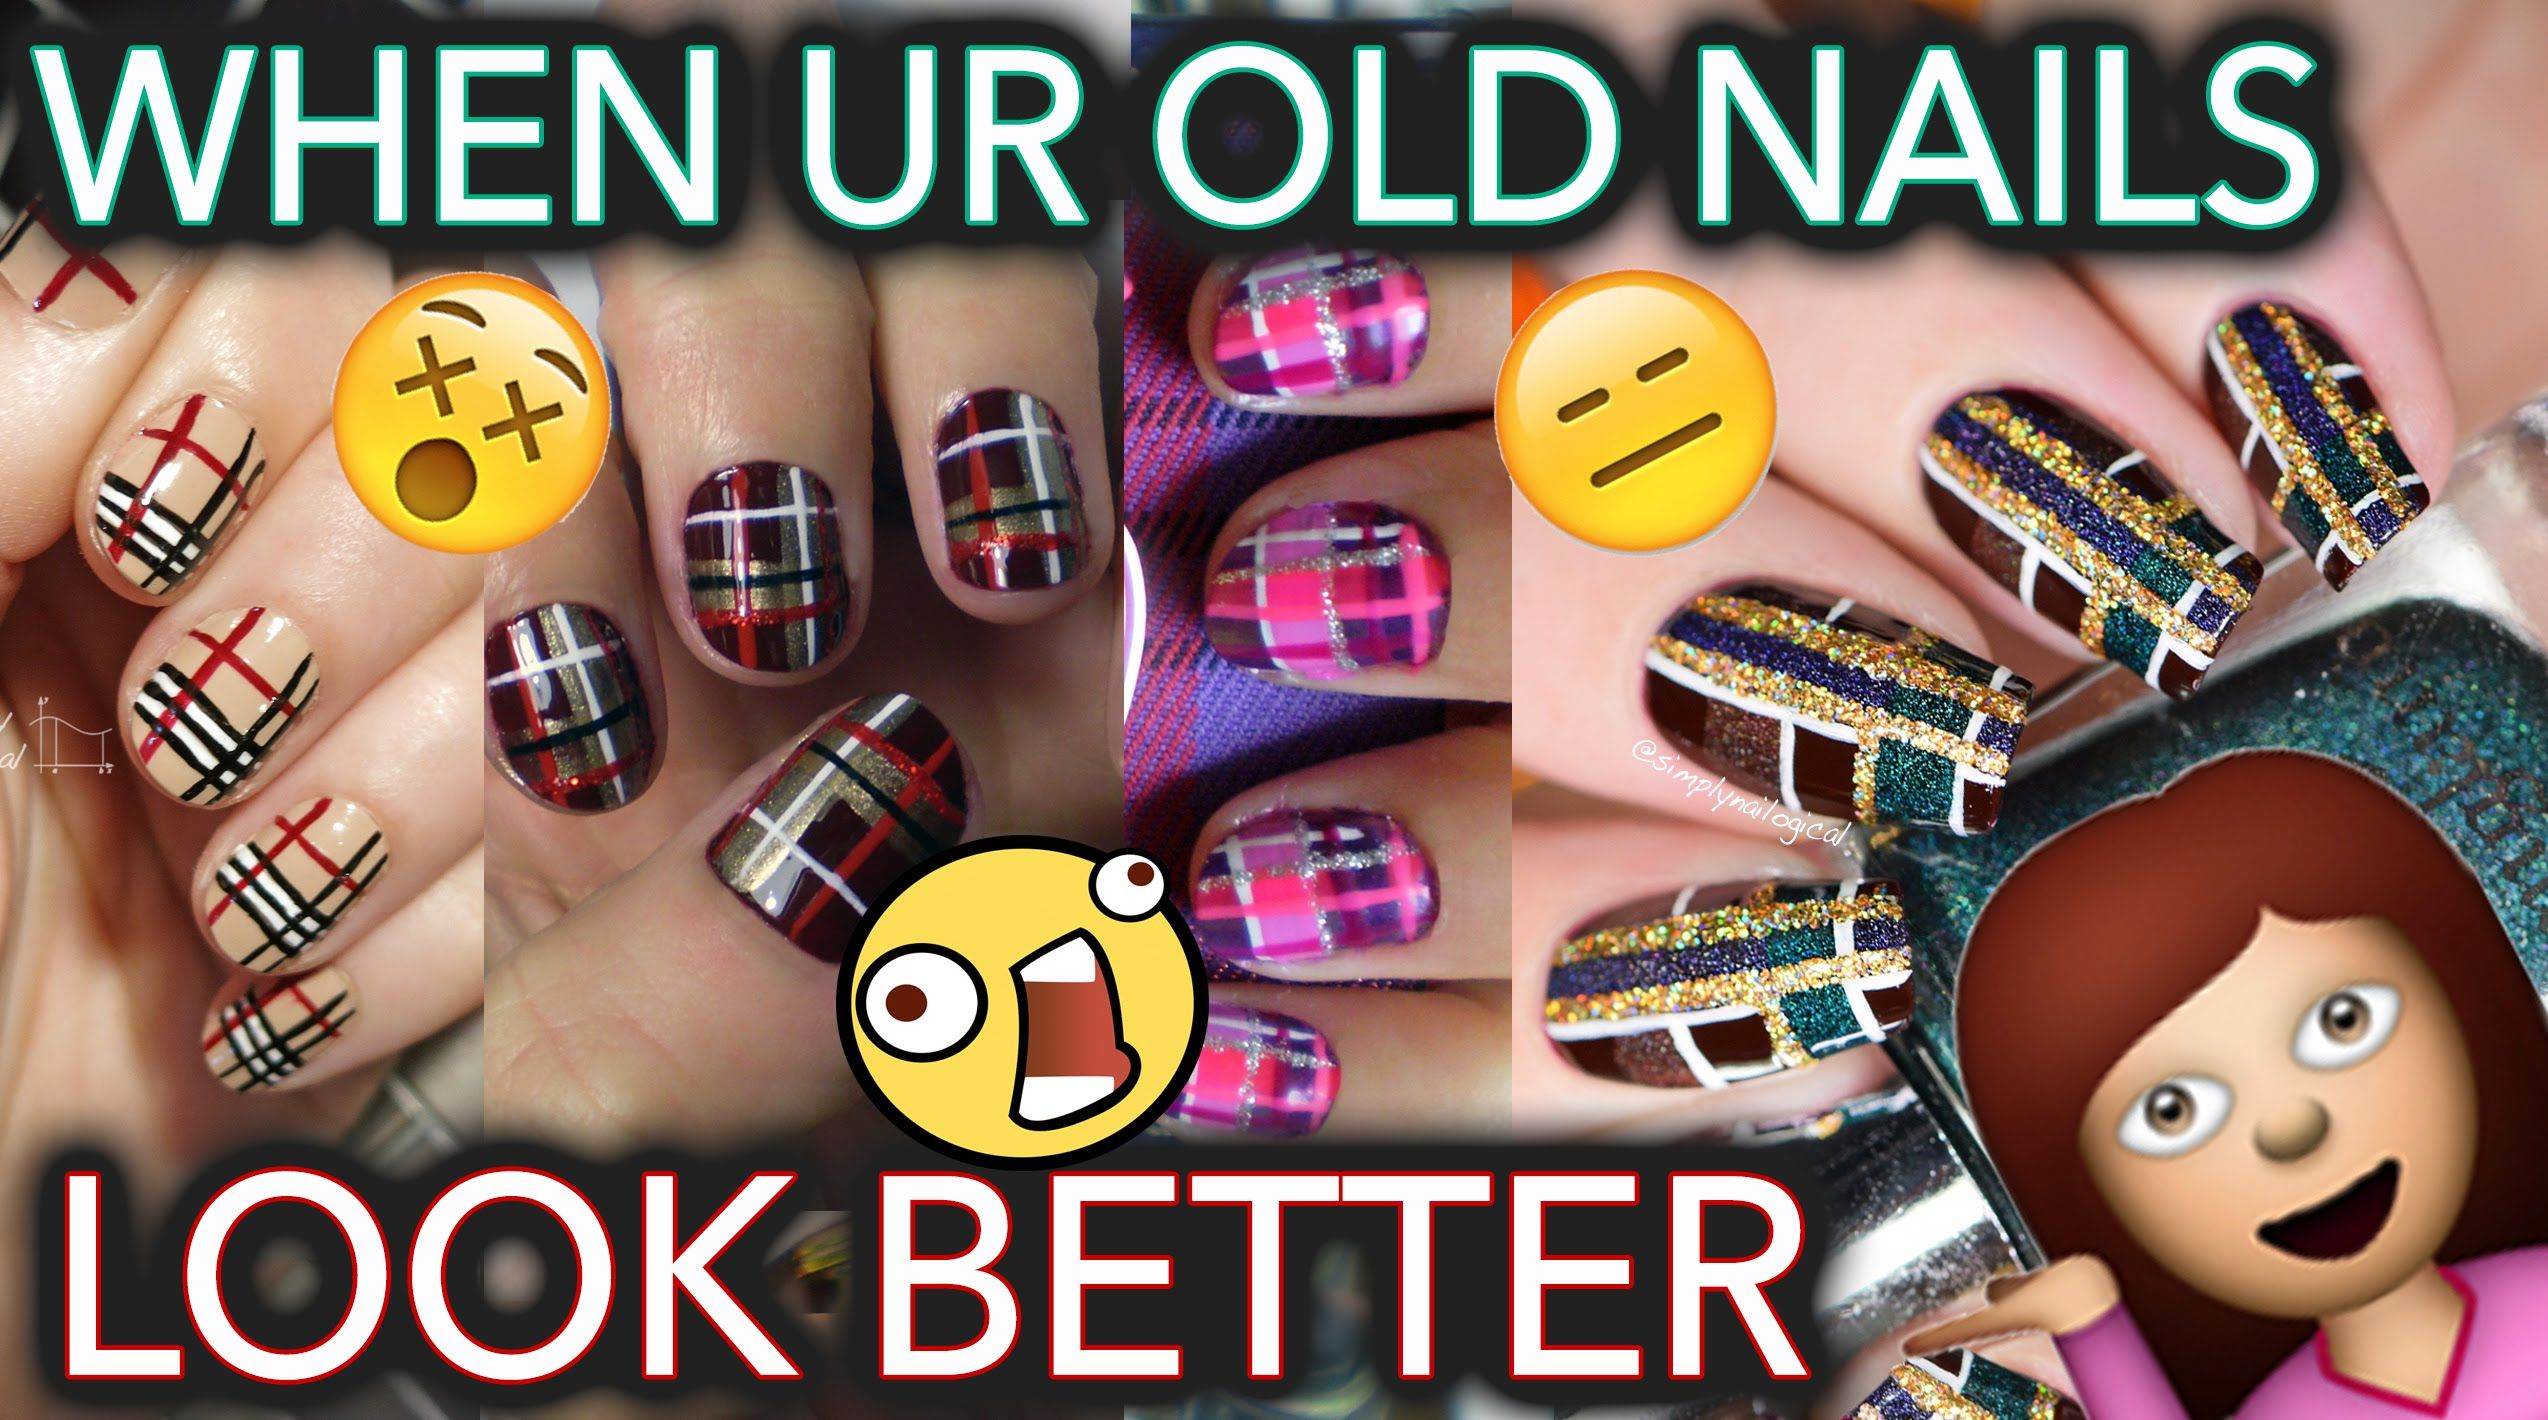 Fall nail art I don't even like cause I like my old stuff better